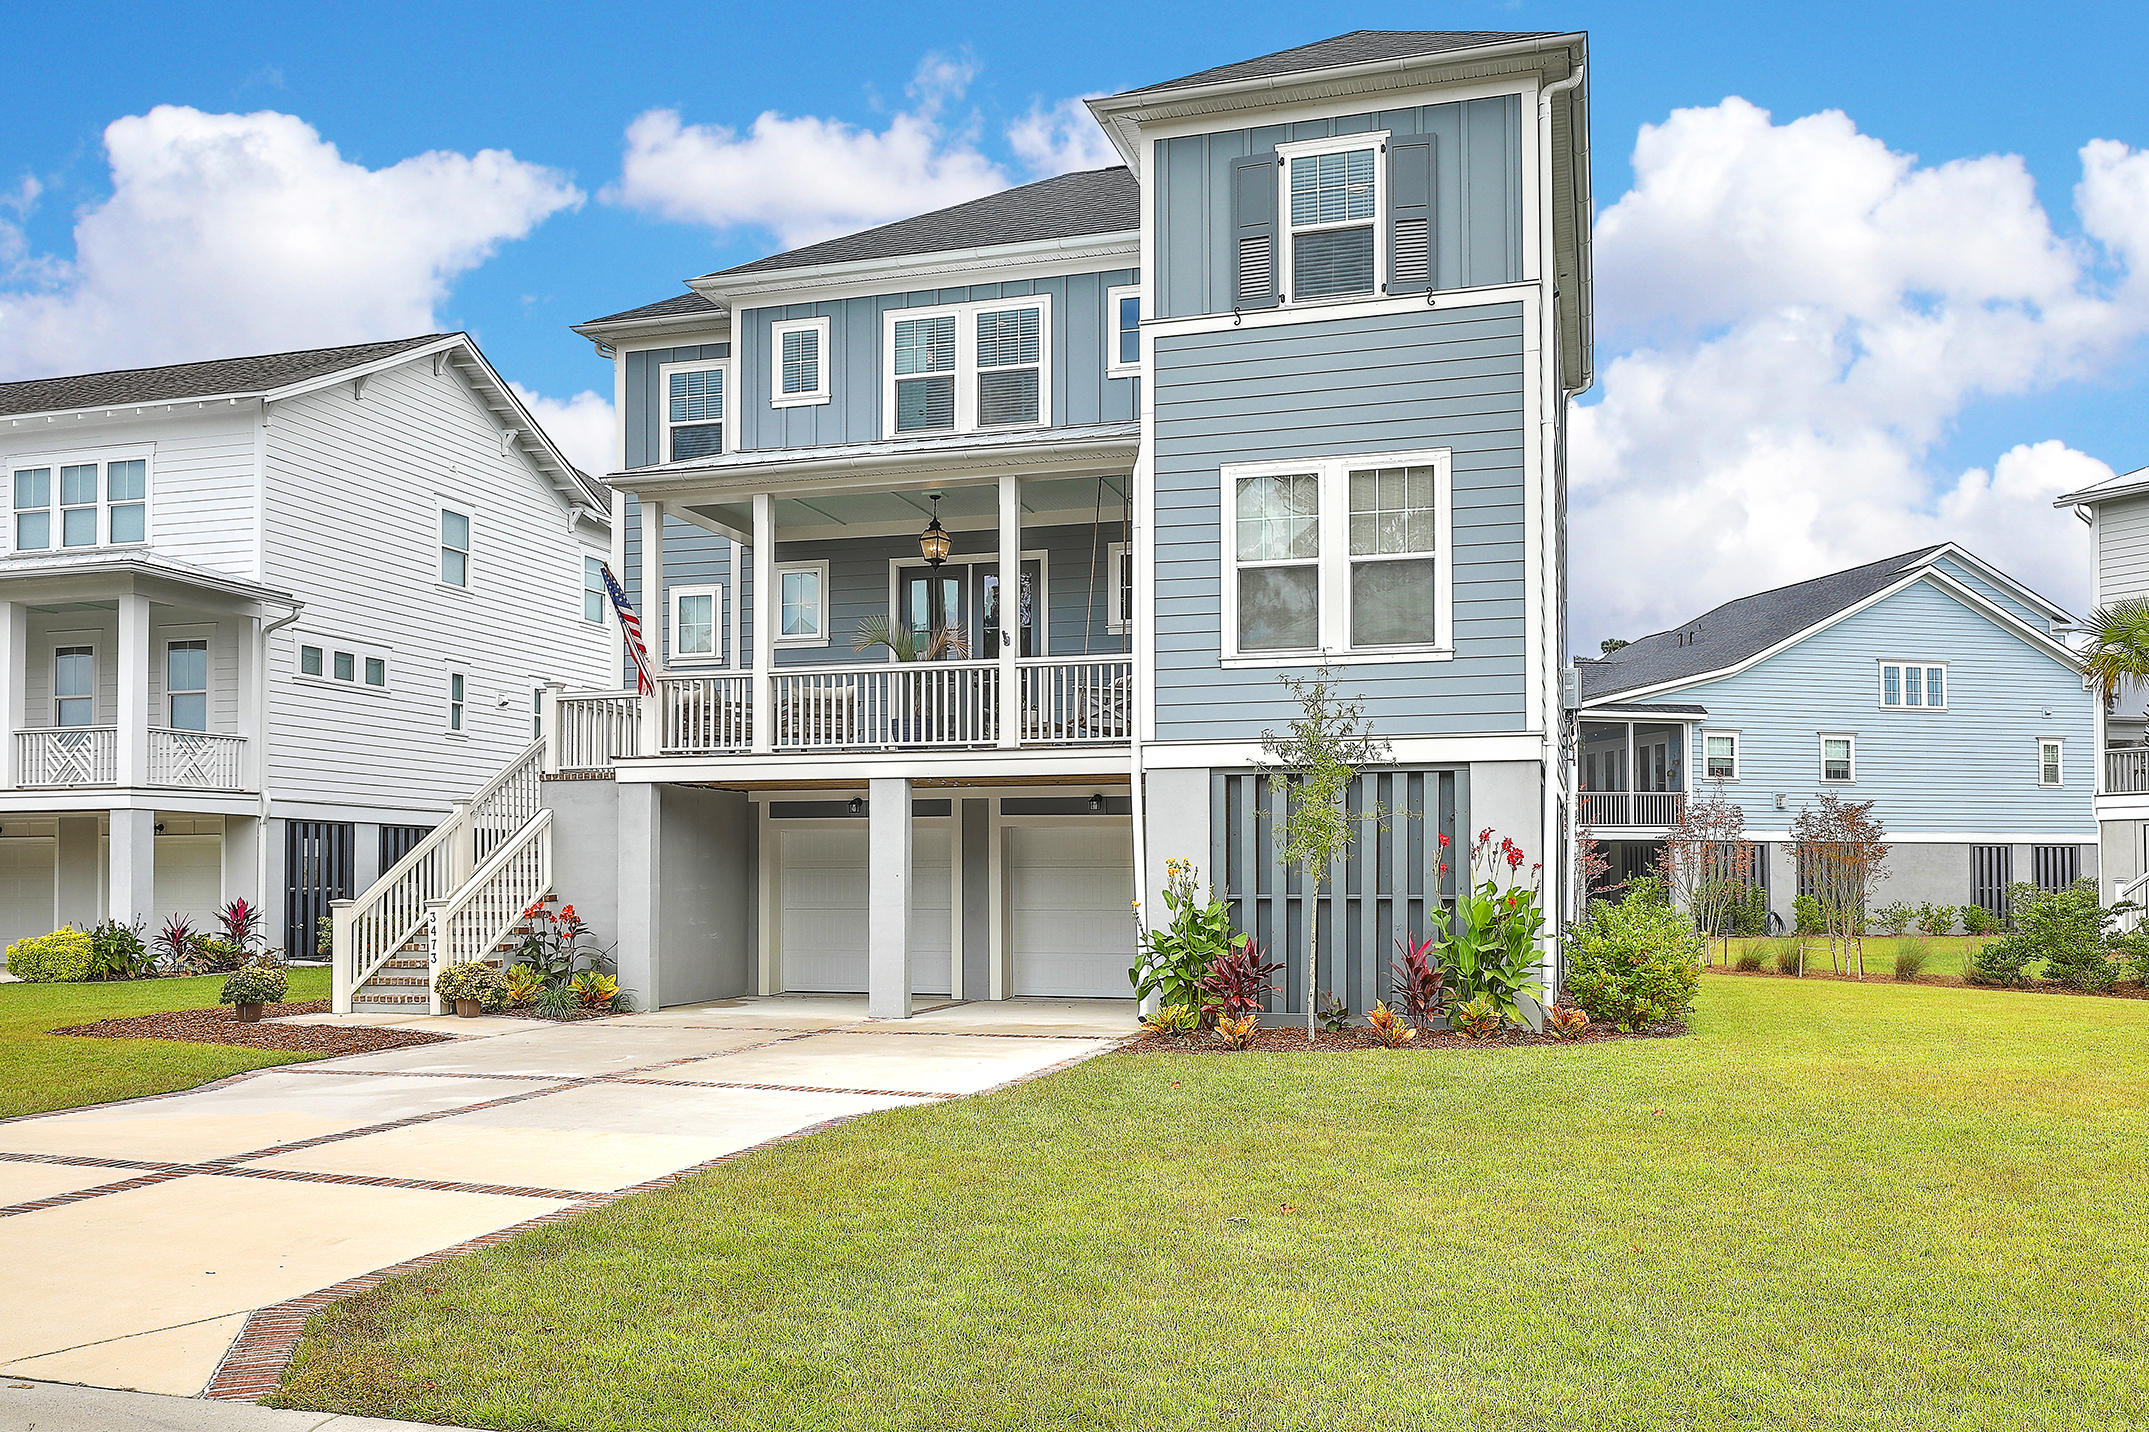 Stratton by the Sound Homes For Sale - 3473 Saltflat, Mount Pleasant, SC - 2